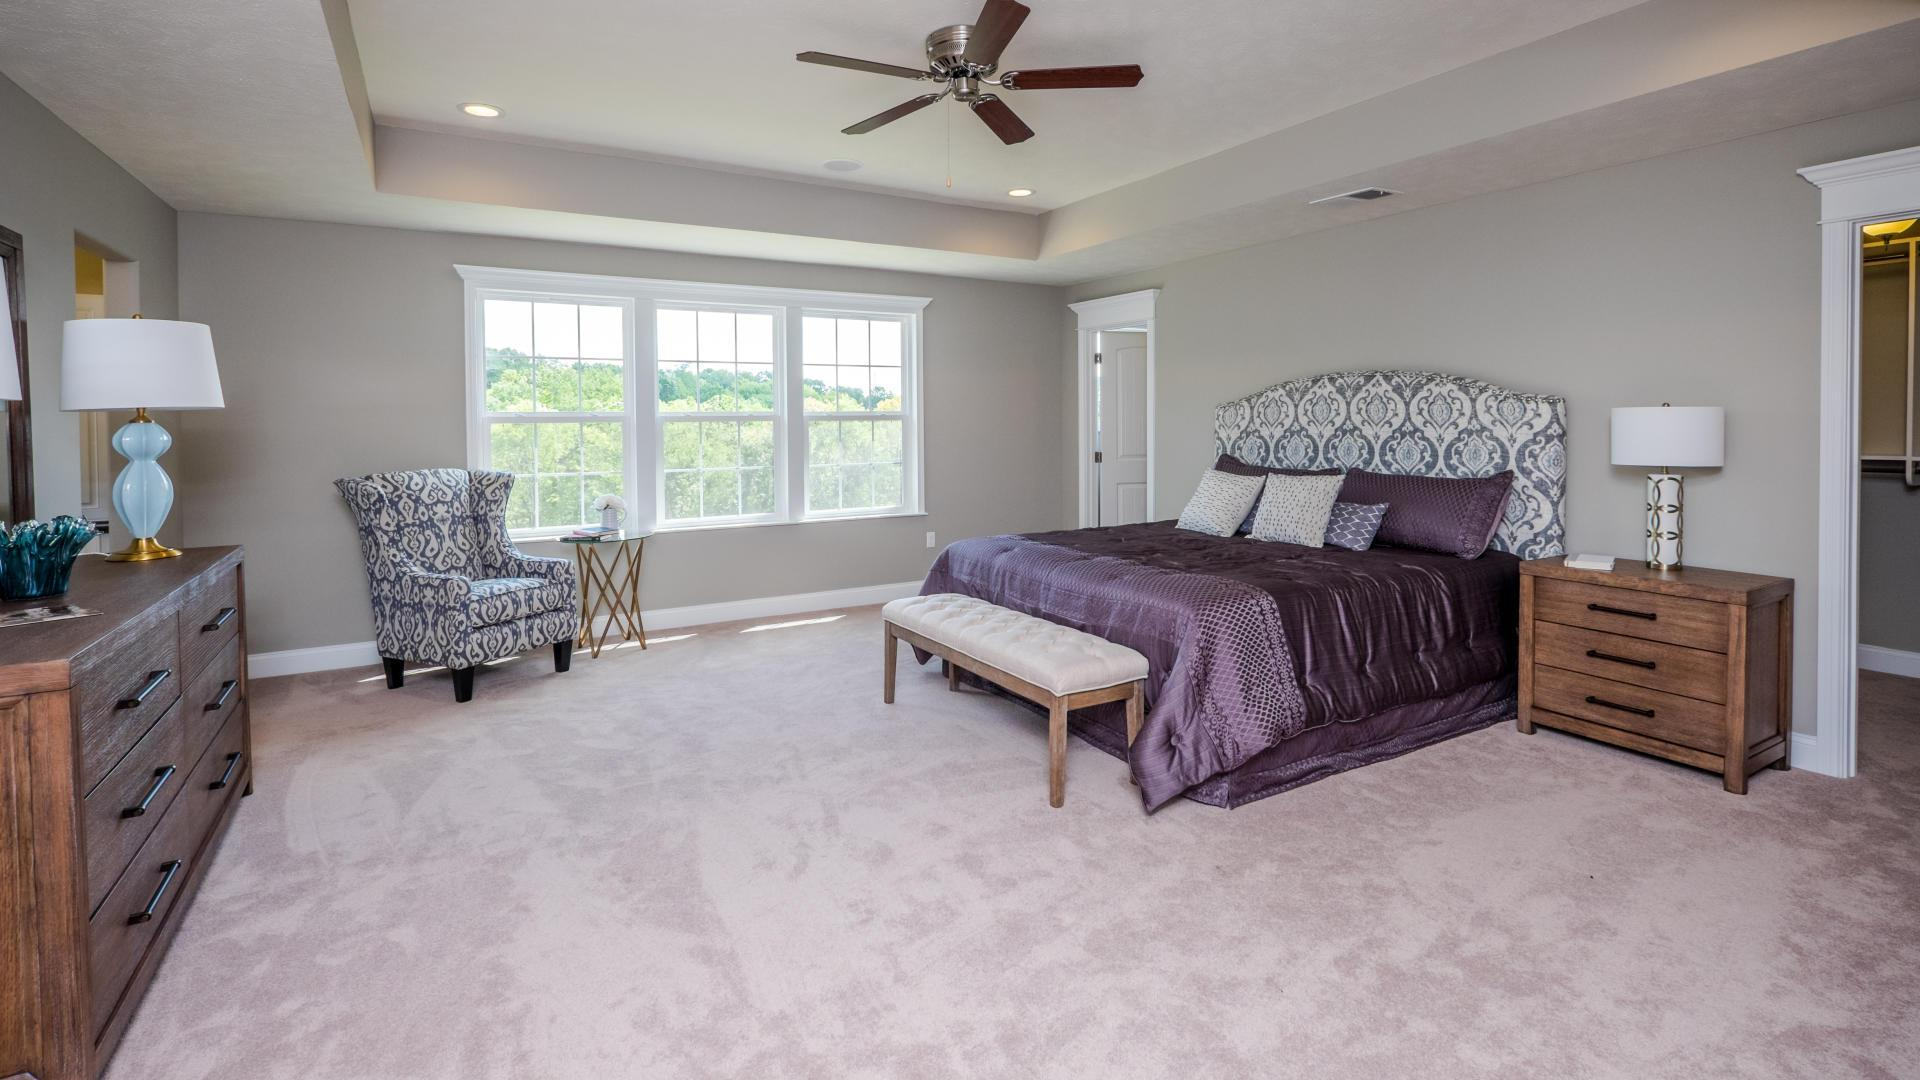 Bedroom featured in the Eisenhower By Maronda Homes in Pittsburgh, PA